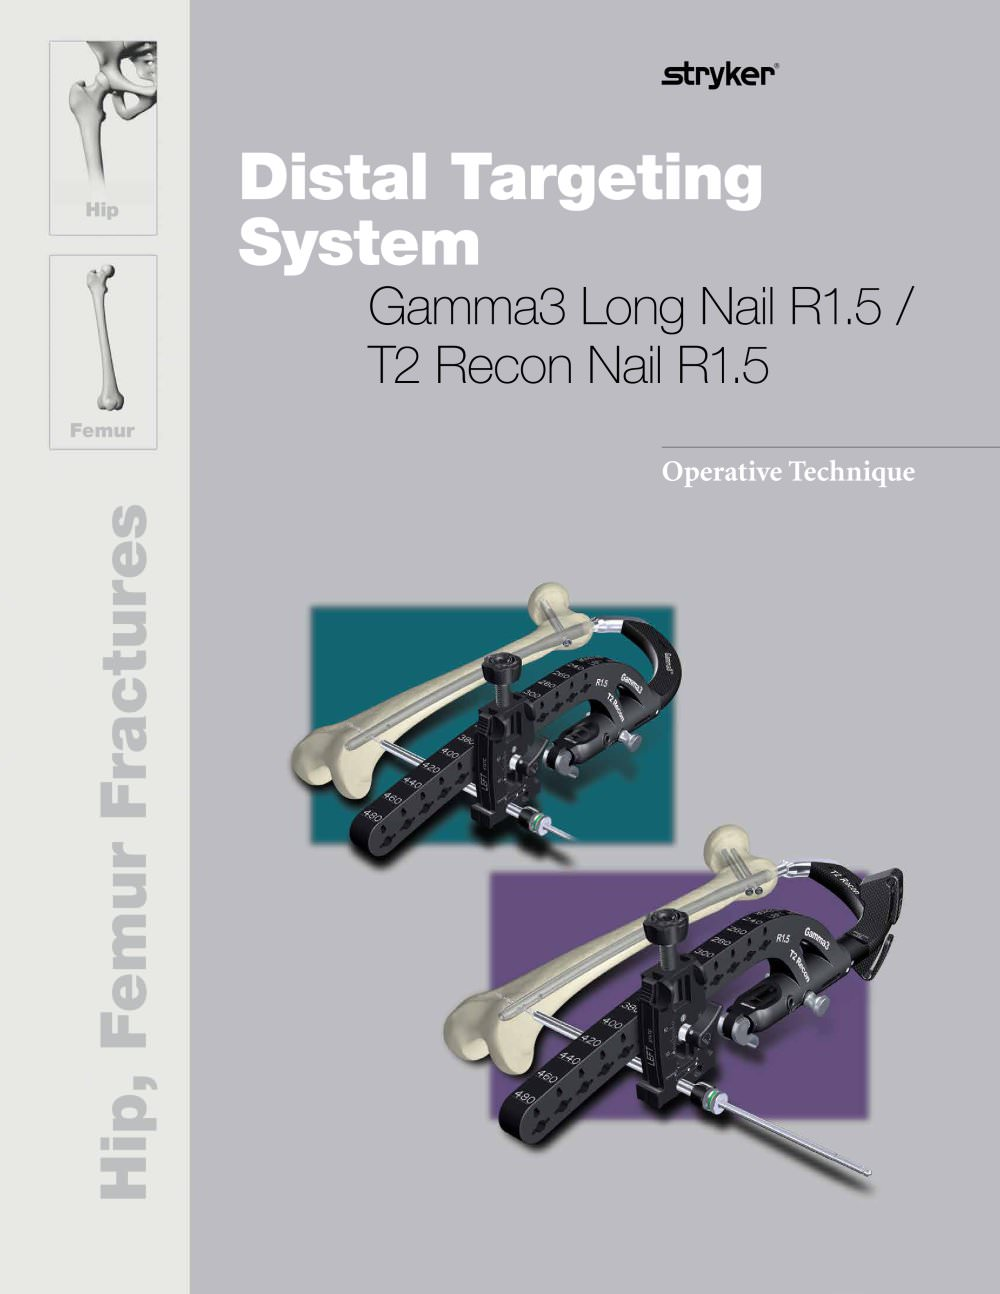 Distal Targeting System - Gamma3 Long Nail R1.5/T2 Recon Nail R1.5 - 24 Pages